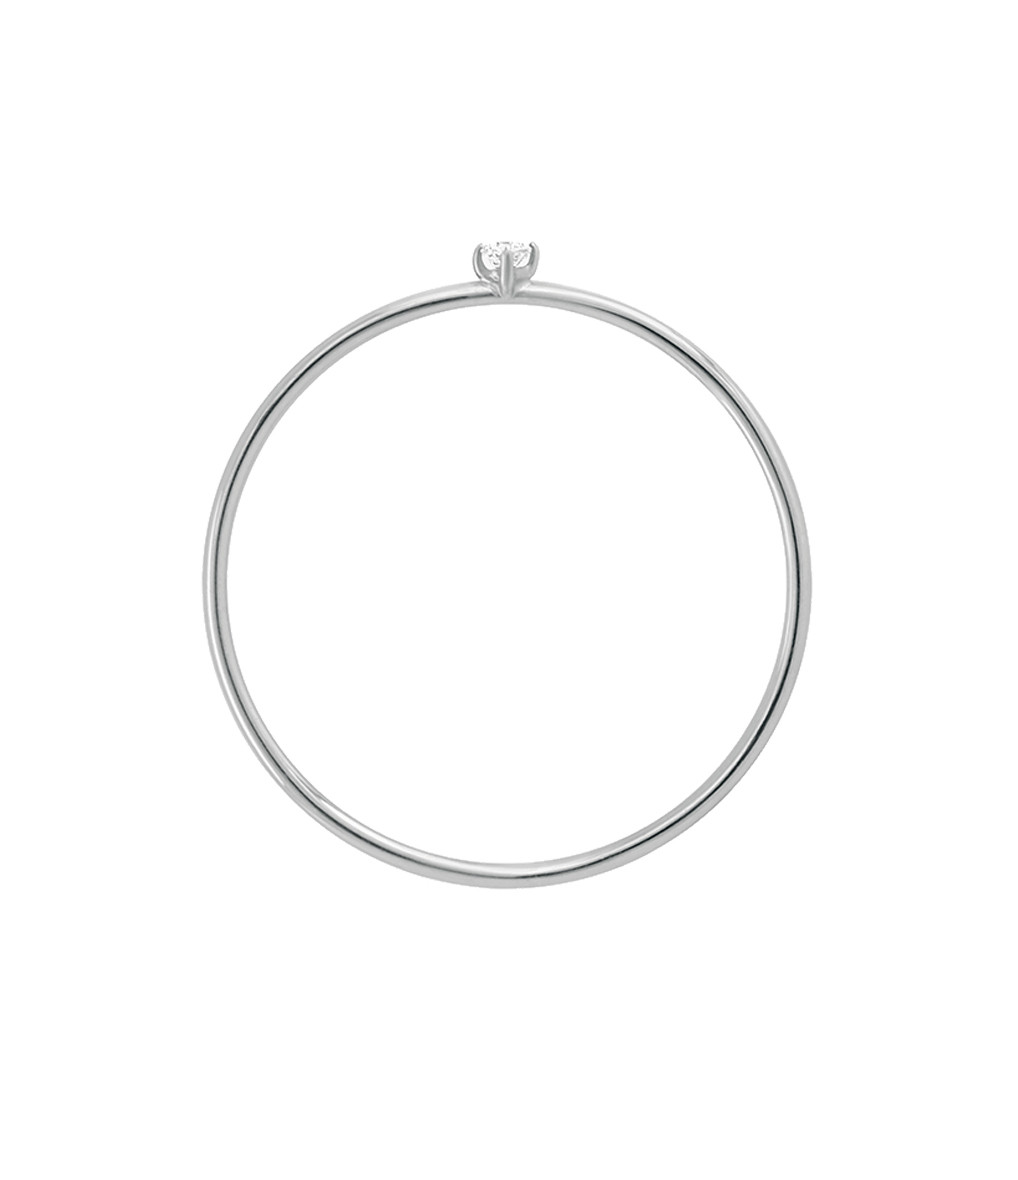 VANRYCKE - Bague Stardust Or Blanc 1 Diamant